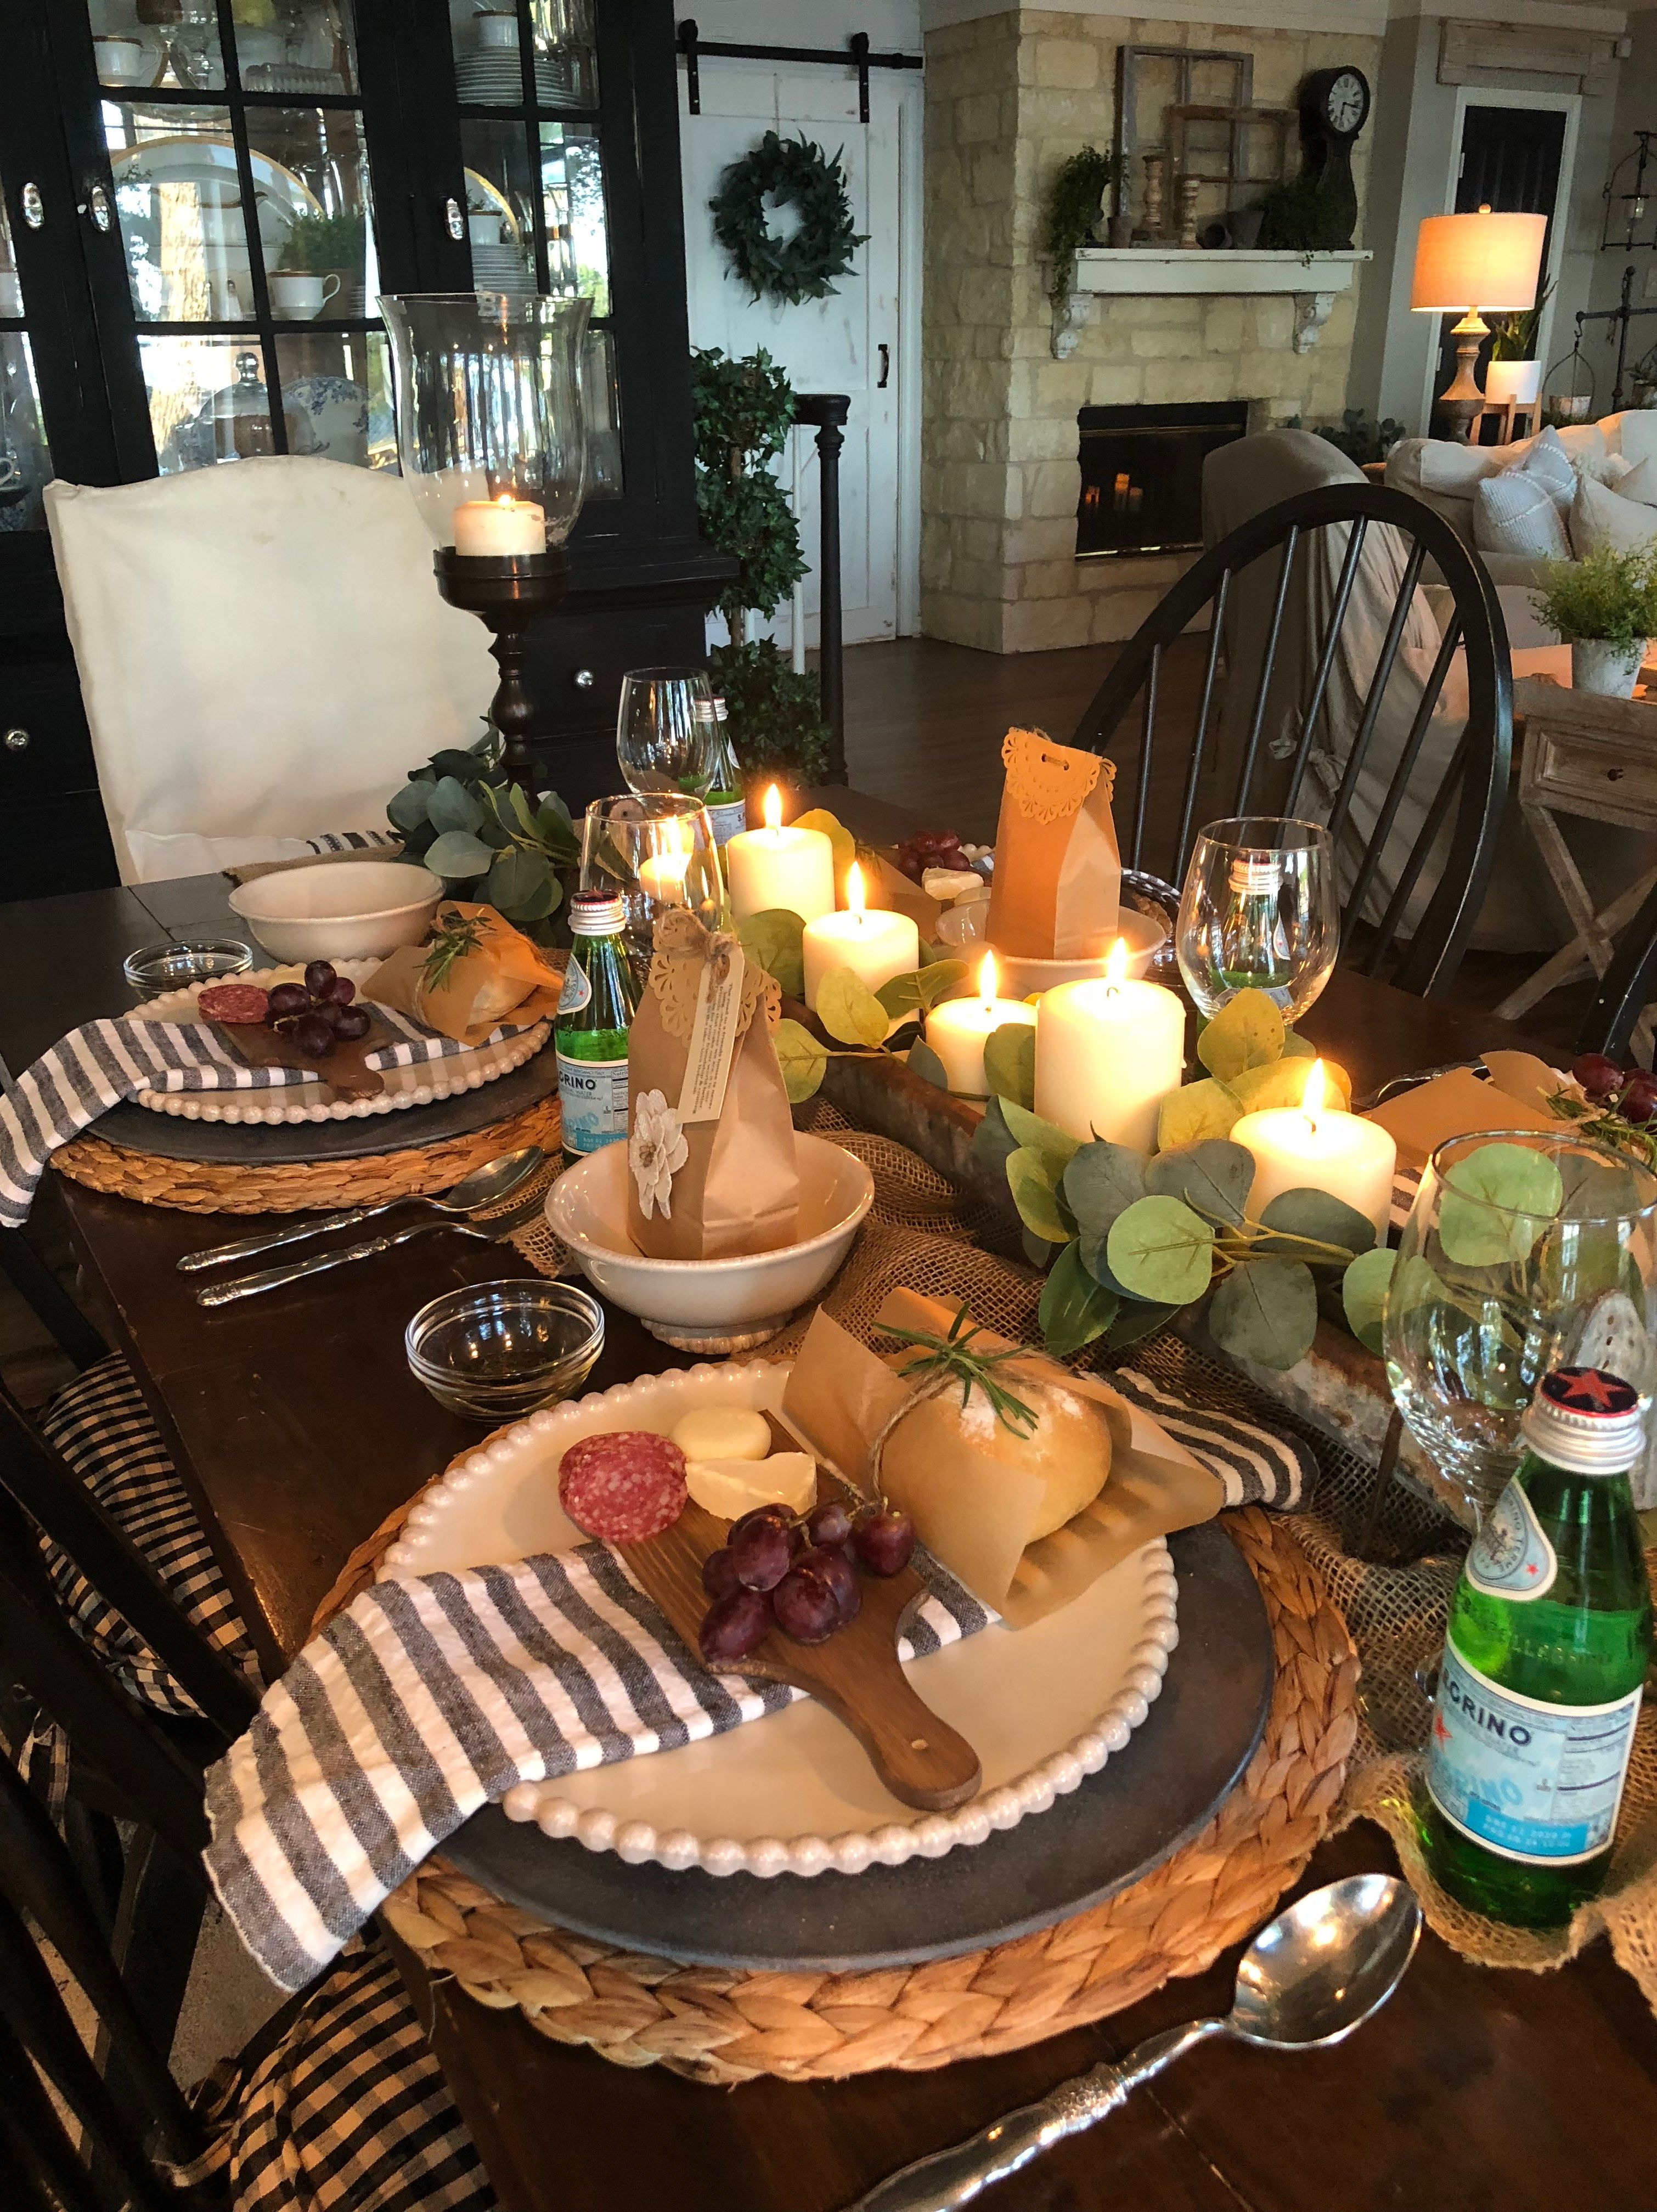 Ideas For An Easy And Beautiful Dinner Party Simple Table Scape Ideas Italian Themed Dinner Ideas Dinner Party Table Easy Dinner Party Dinner Table Setting